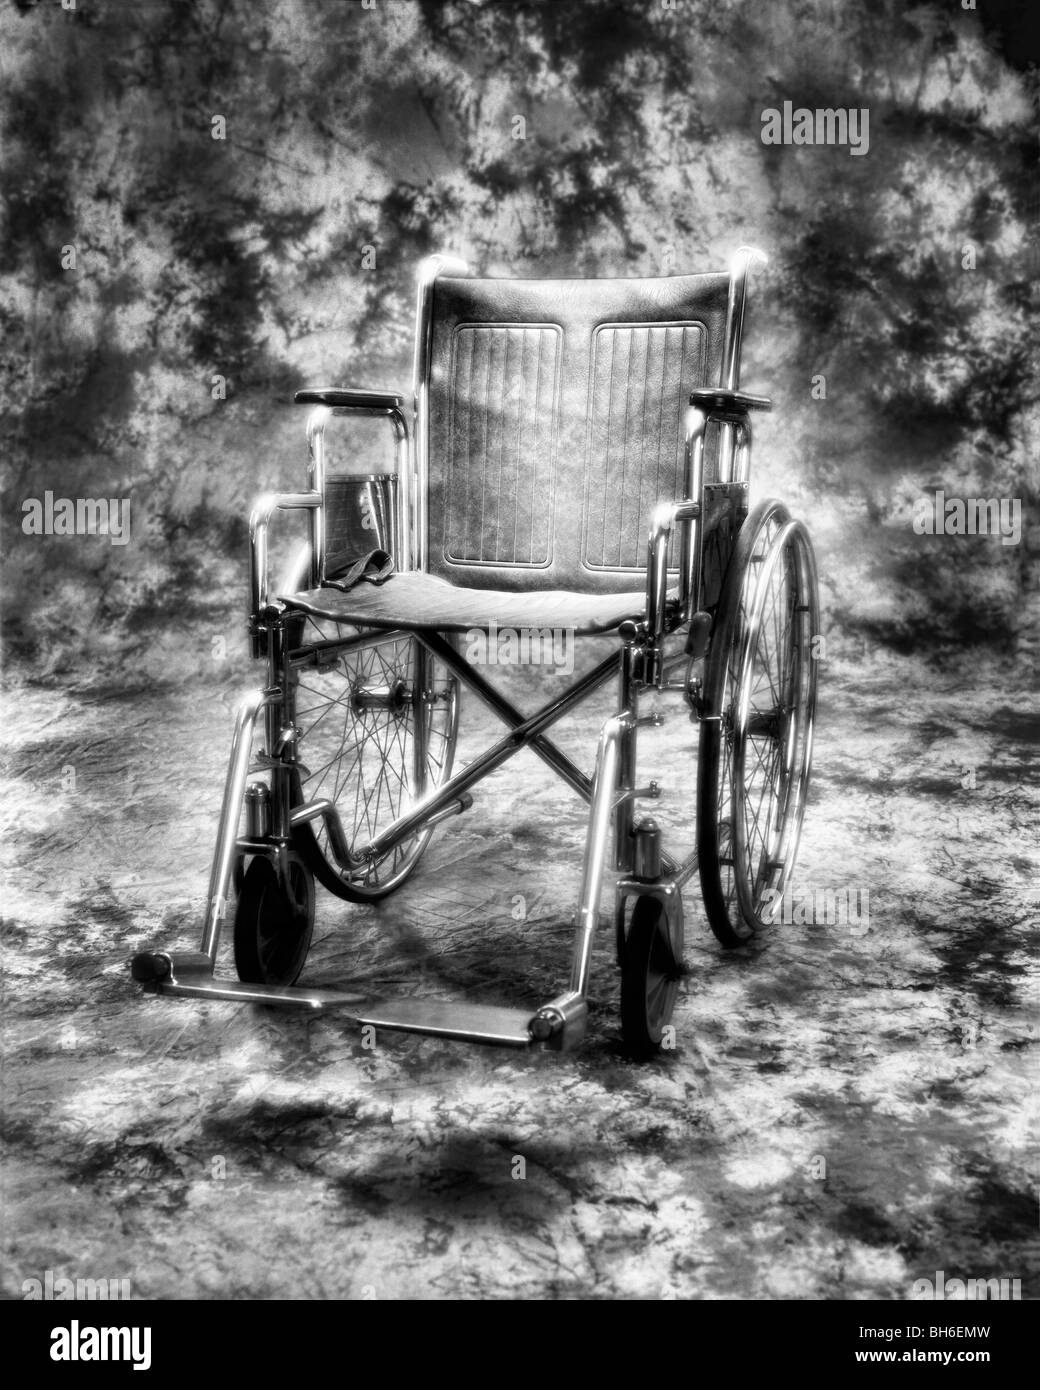 A dramatic and eerie shot of an empty wheelchair, this was shot on infrared black and white film - Stock Image